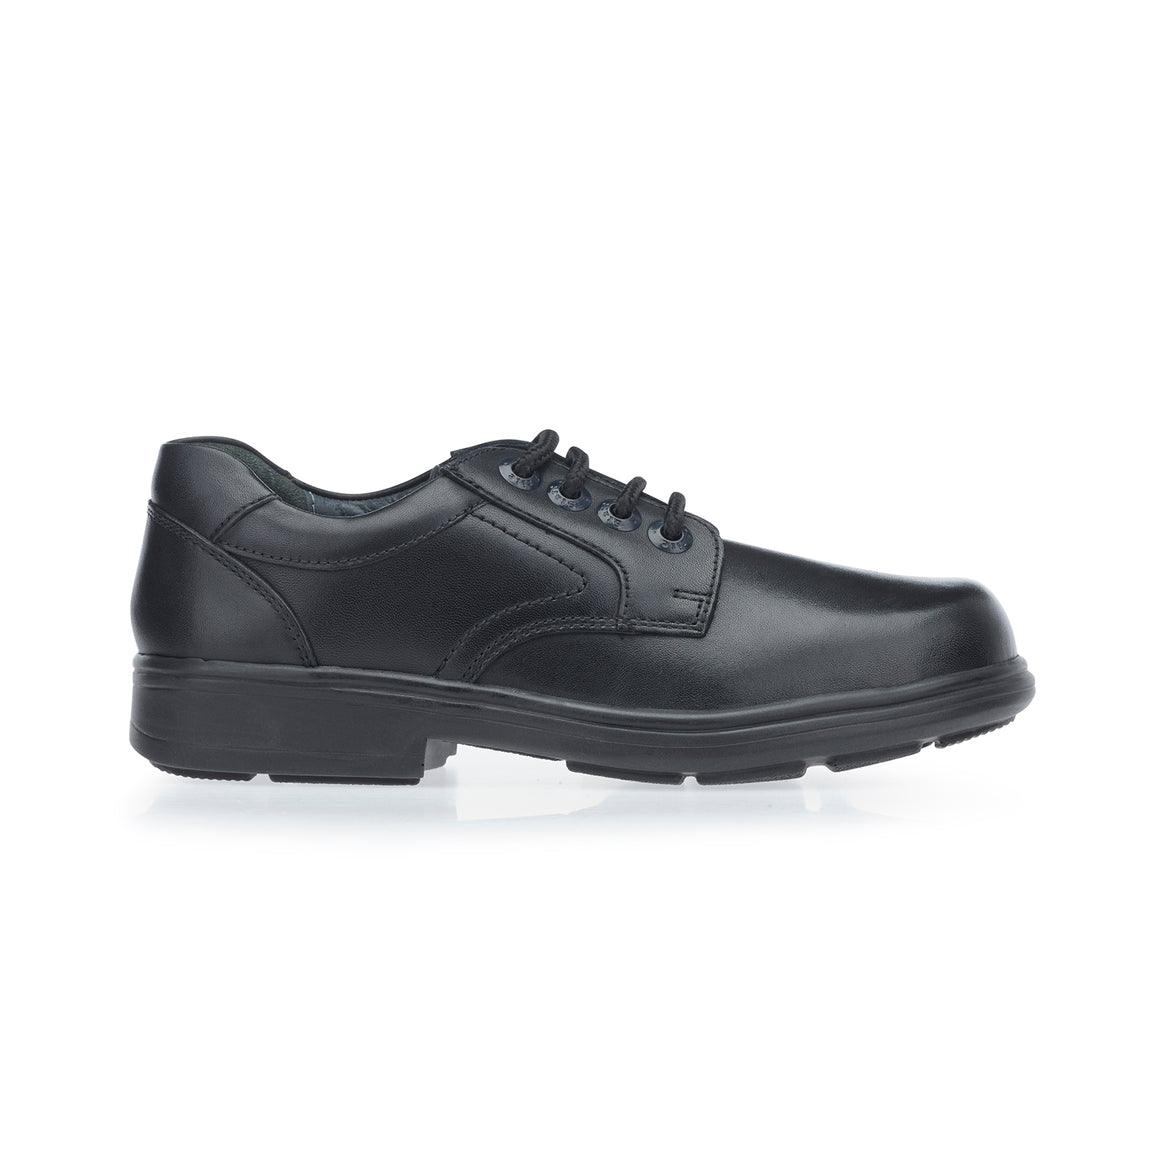 Isaac School Shoes for Boys in Black